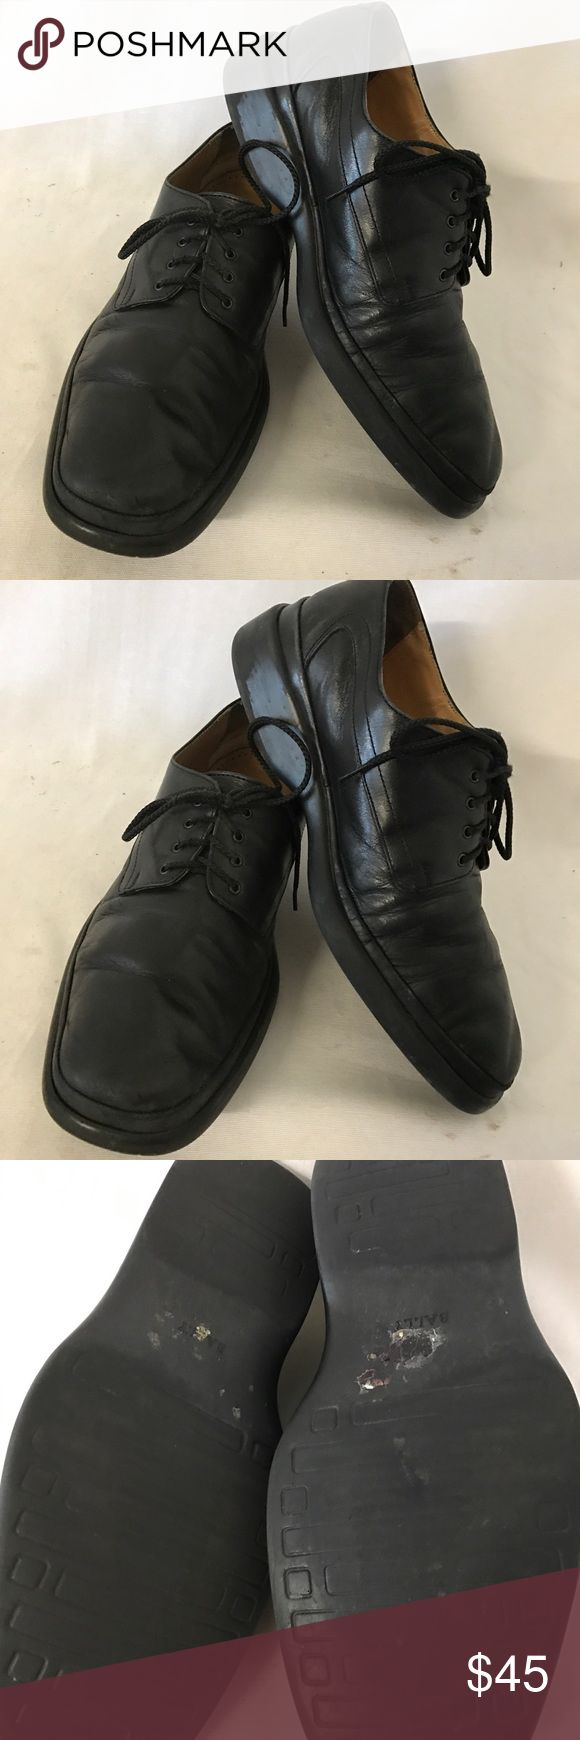 Bally men's shoes size 7D Has some worn. Bally Shoes Flats & Loafers